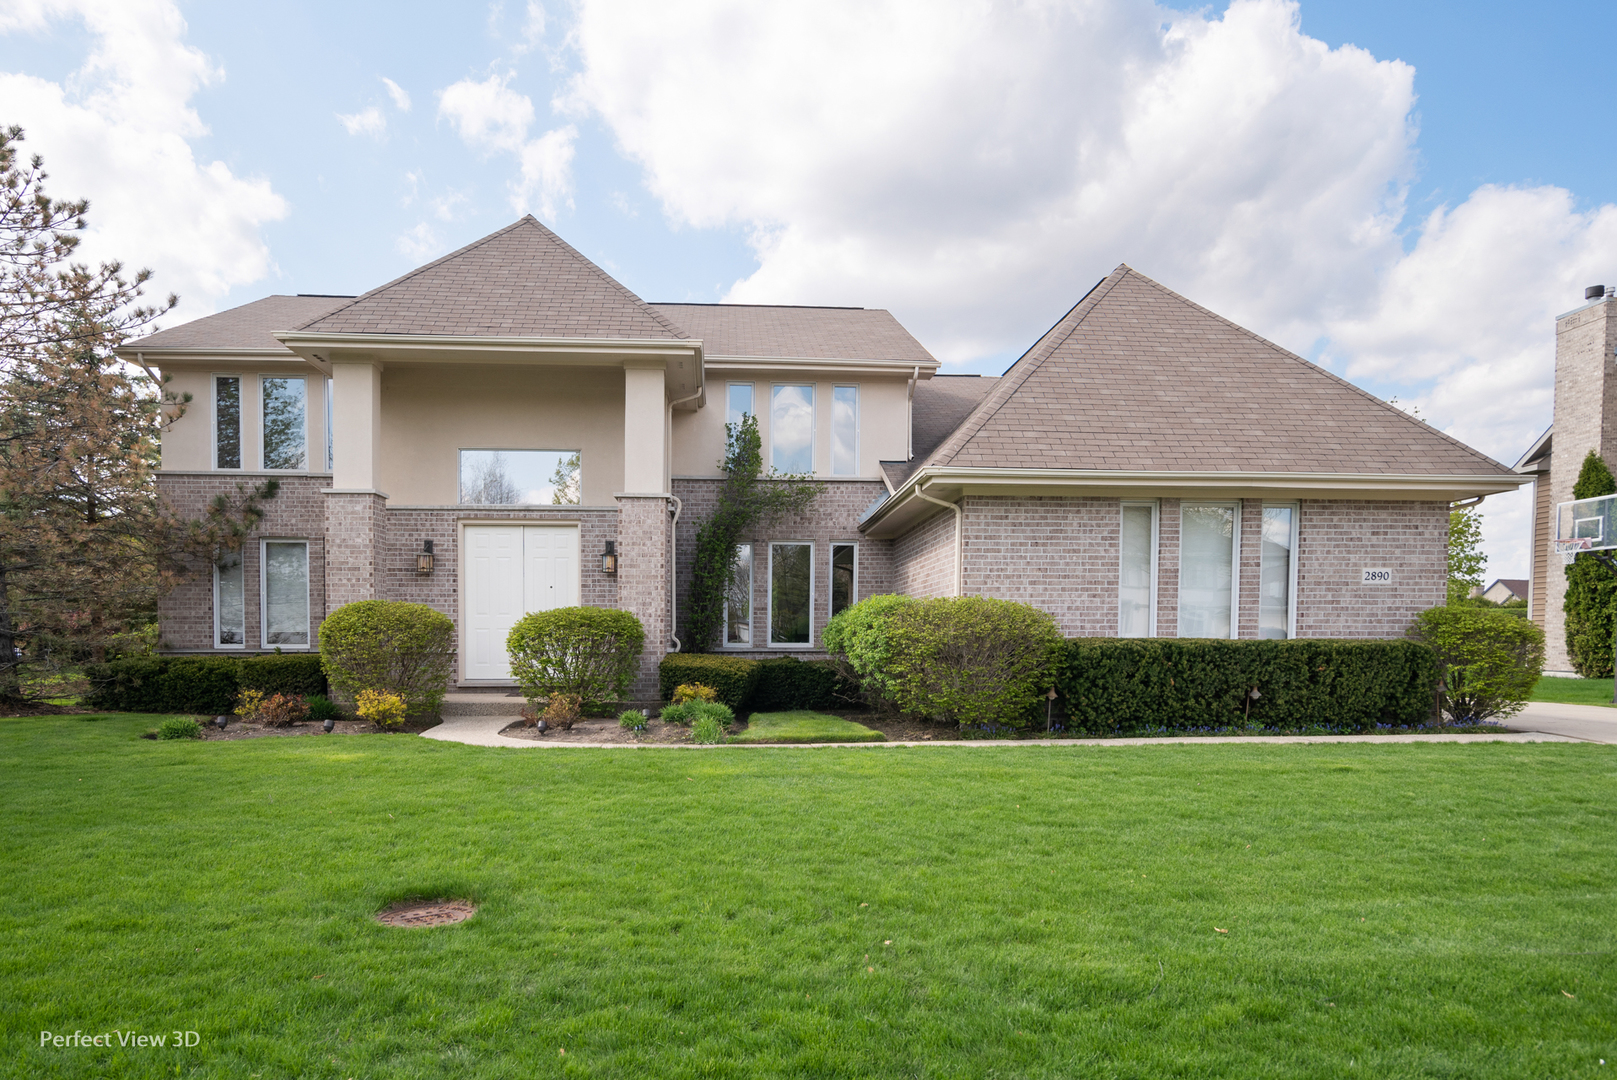 2890 Daulton Drive, one of homes for sale in Buffalo Grove